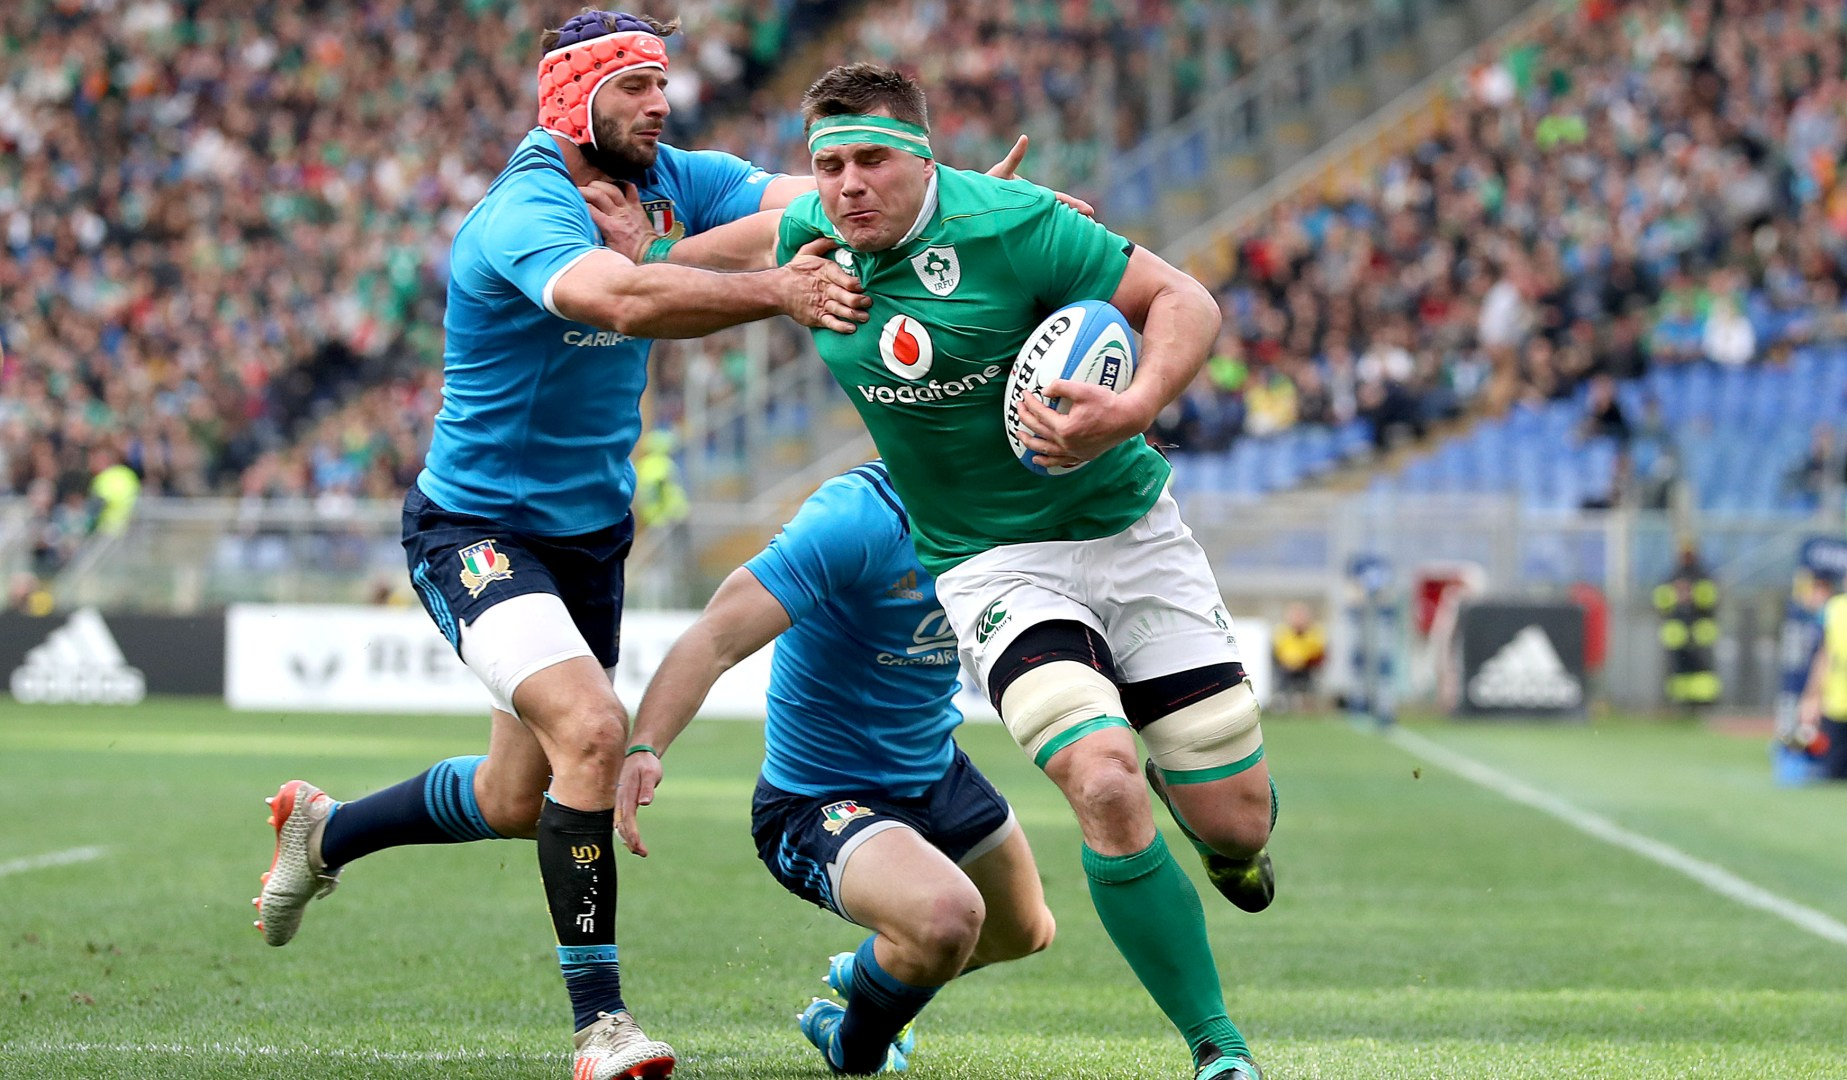 LionsWatch: Memorable day for Stander and Ireland in Rome